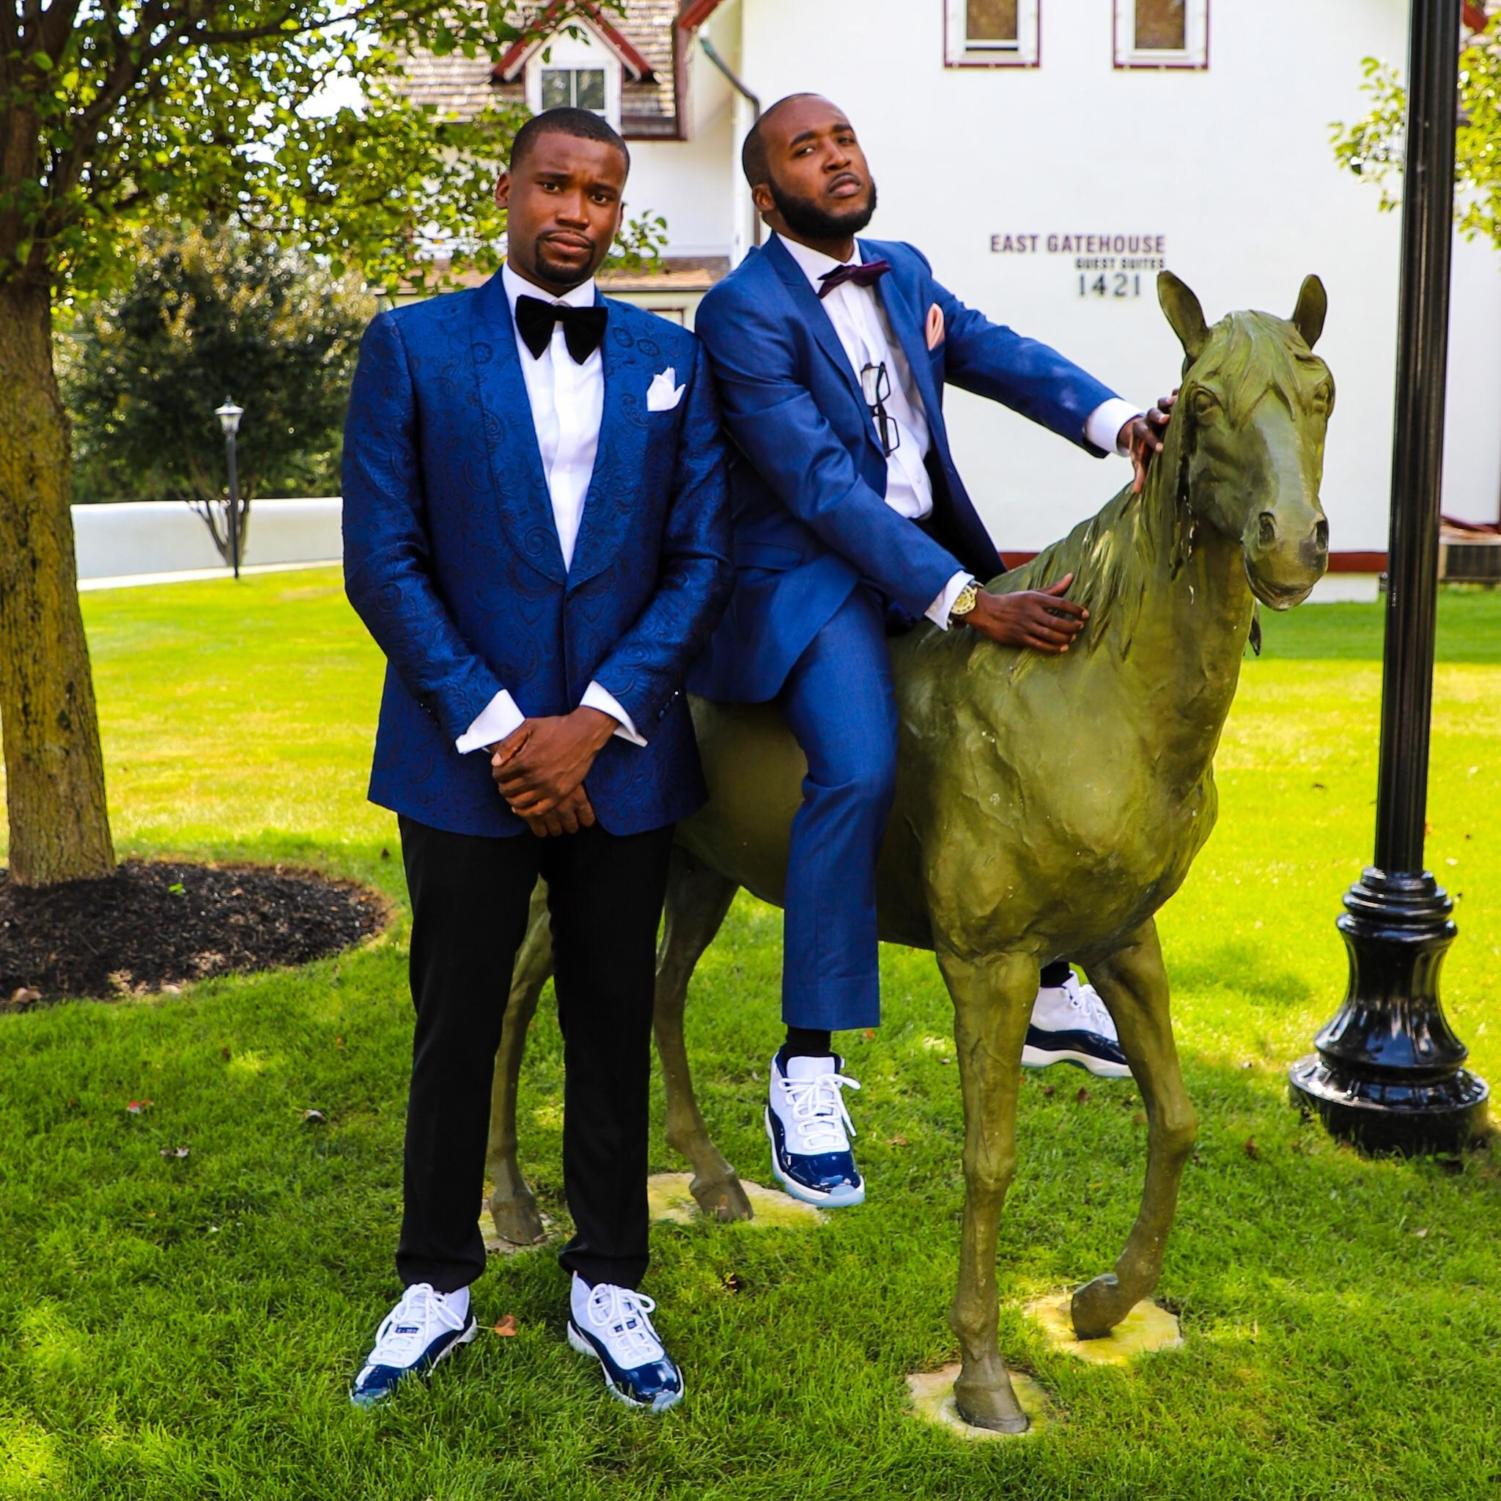 Wearing suits with Jordans is an unorthodox combination growing in popularity.